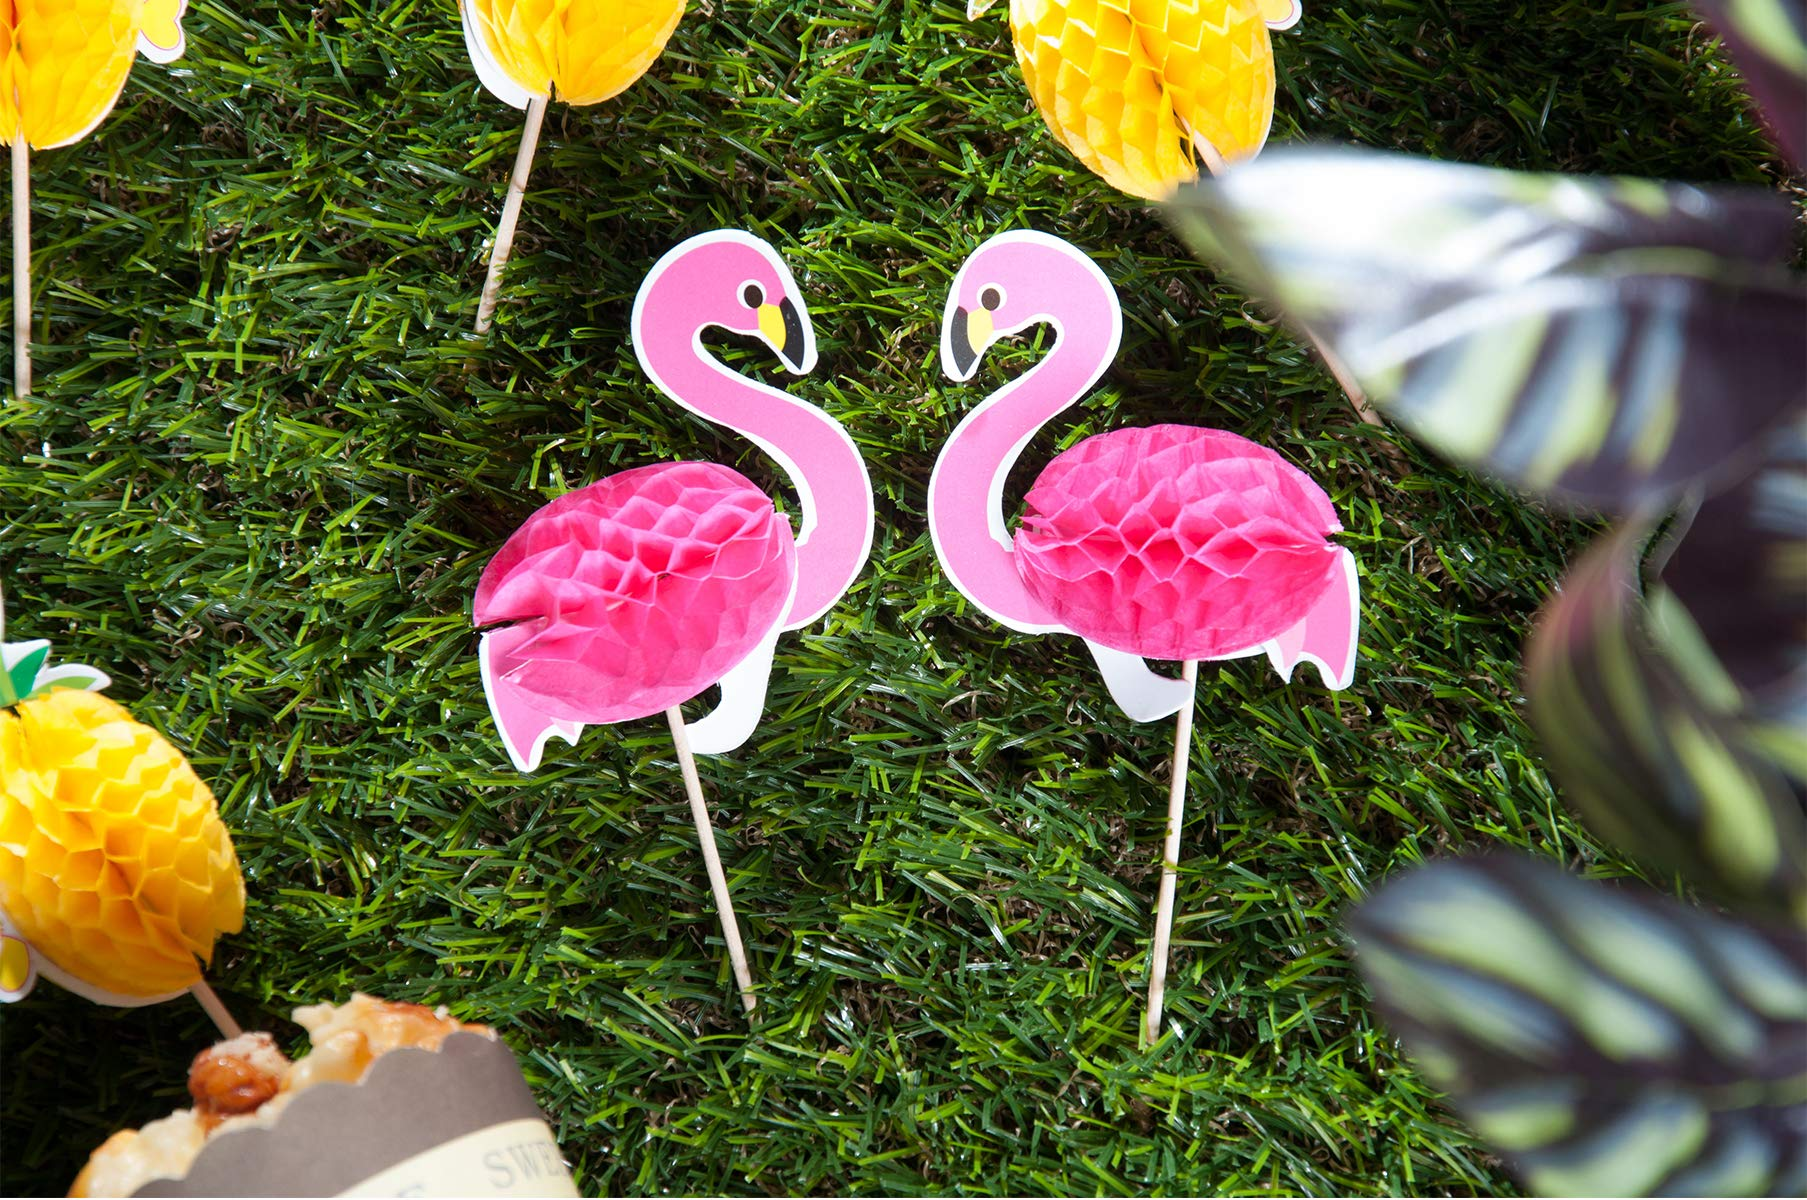 Lauren 48 Pcs Cupcake Toppers 3D Flamingo and Pineapple Cupcakes Toppers Food Picks Party Cocktail for Party Tropical Cupcake Picks Decoration by Lauren (Image #7)